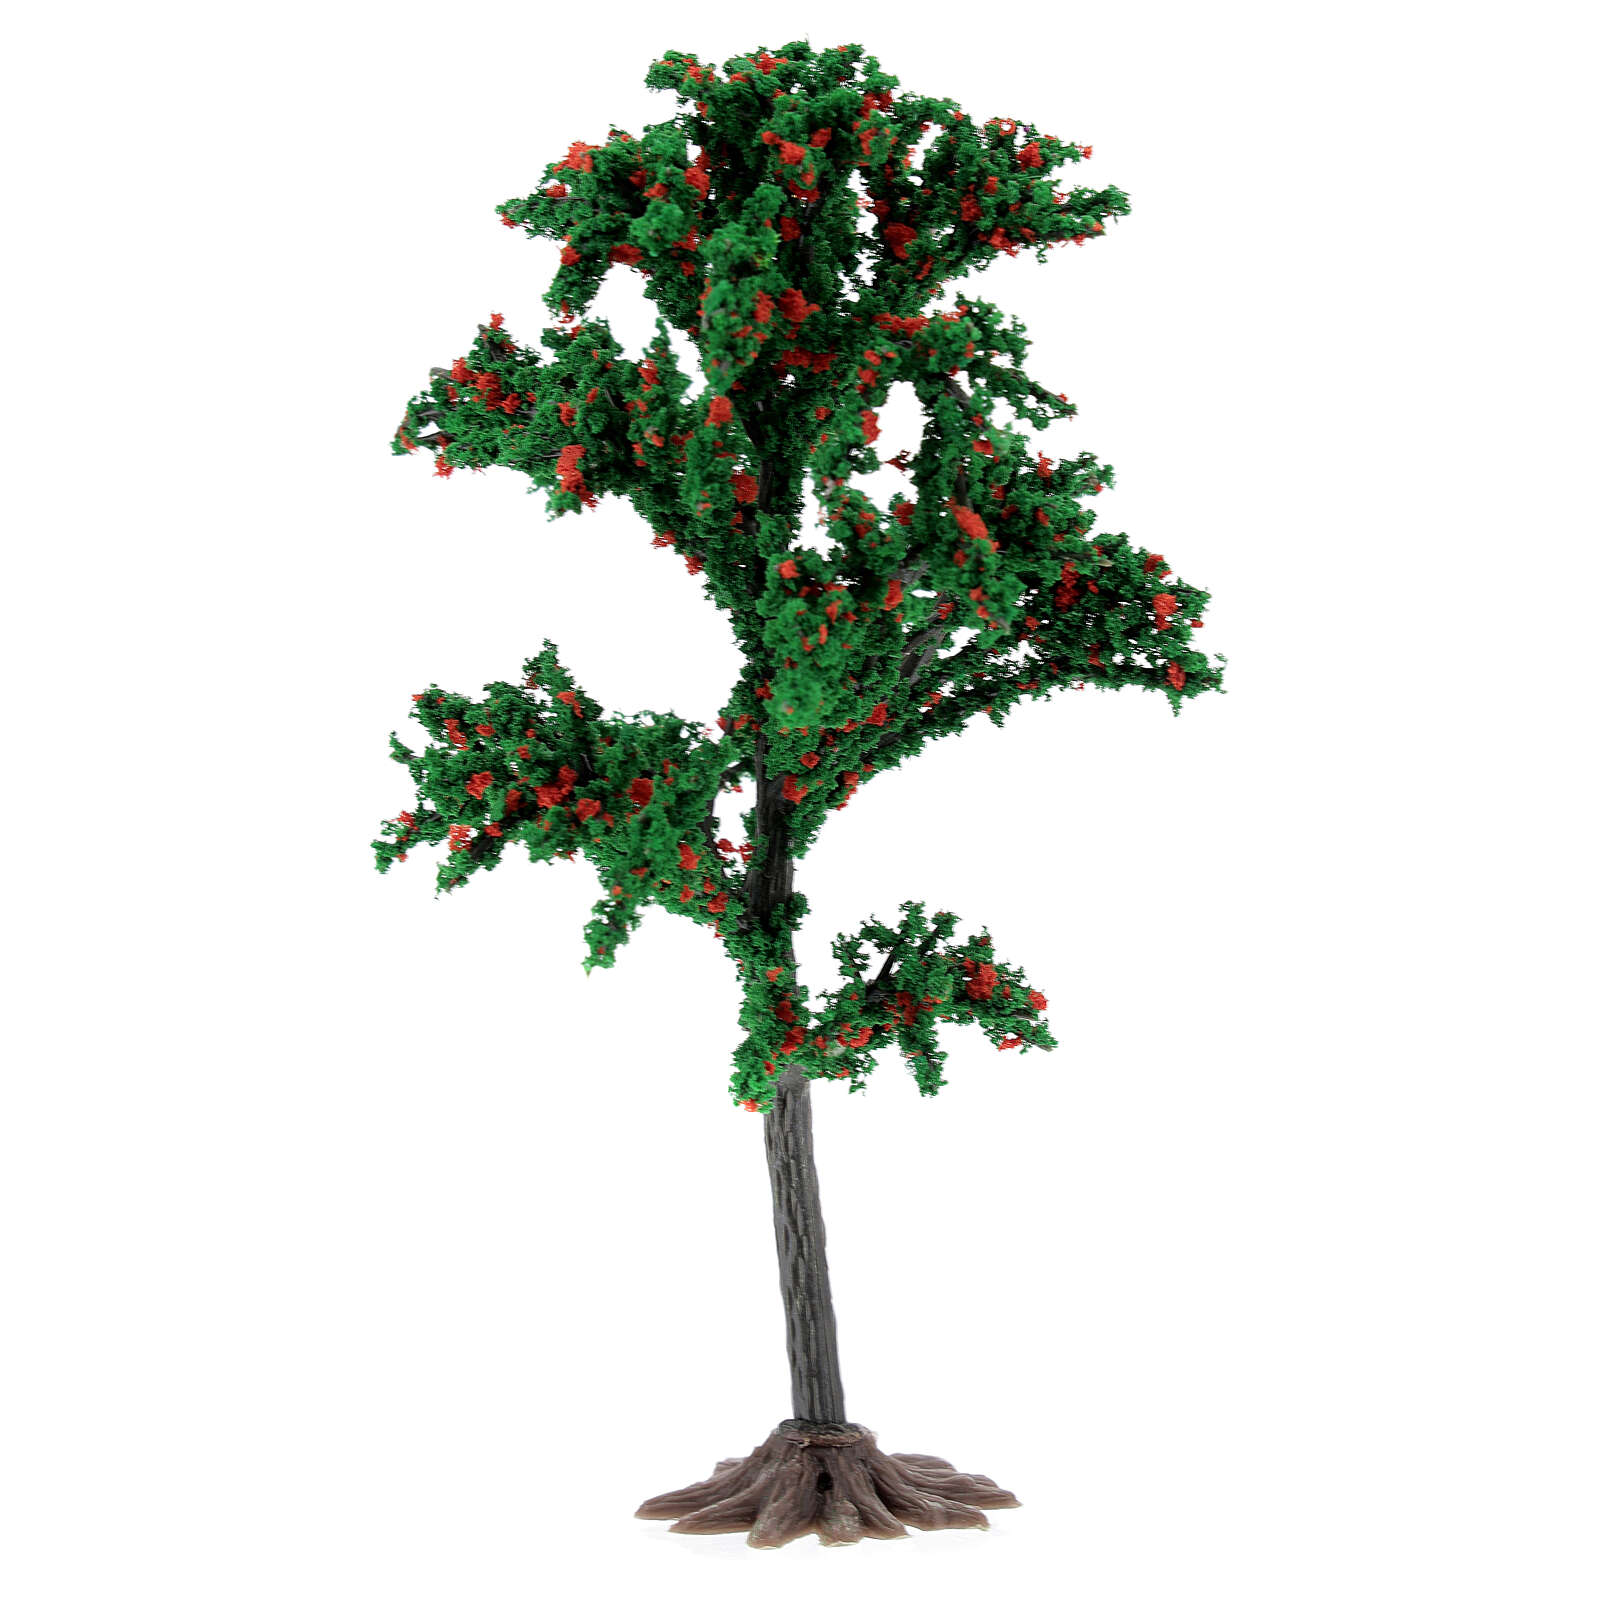 Tree trunk 15 cm for Nativity Scene with 6-10 cm figurines 4